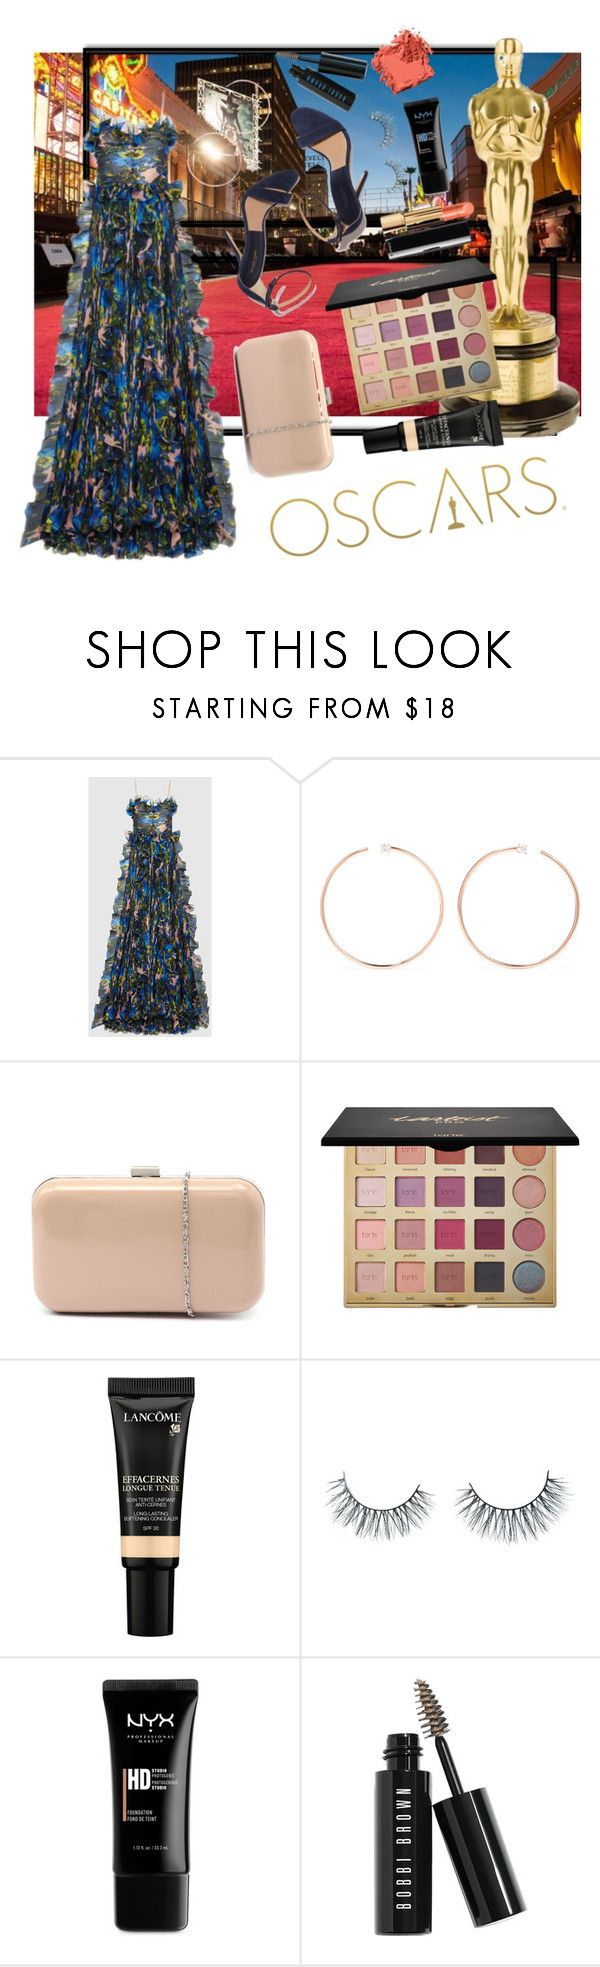 """Oscars Countdown: Presenter"" by lupeobera ❤ liked on Polyvore featuring Gucci, Anita Ko, Verali, tarte, Lancôme, Unicorn Lashes, NYX and Bobbi Brown Cosmetics"